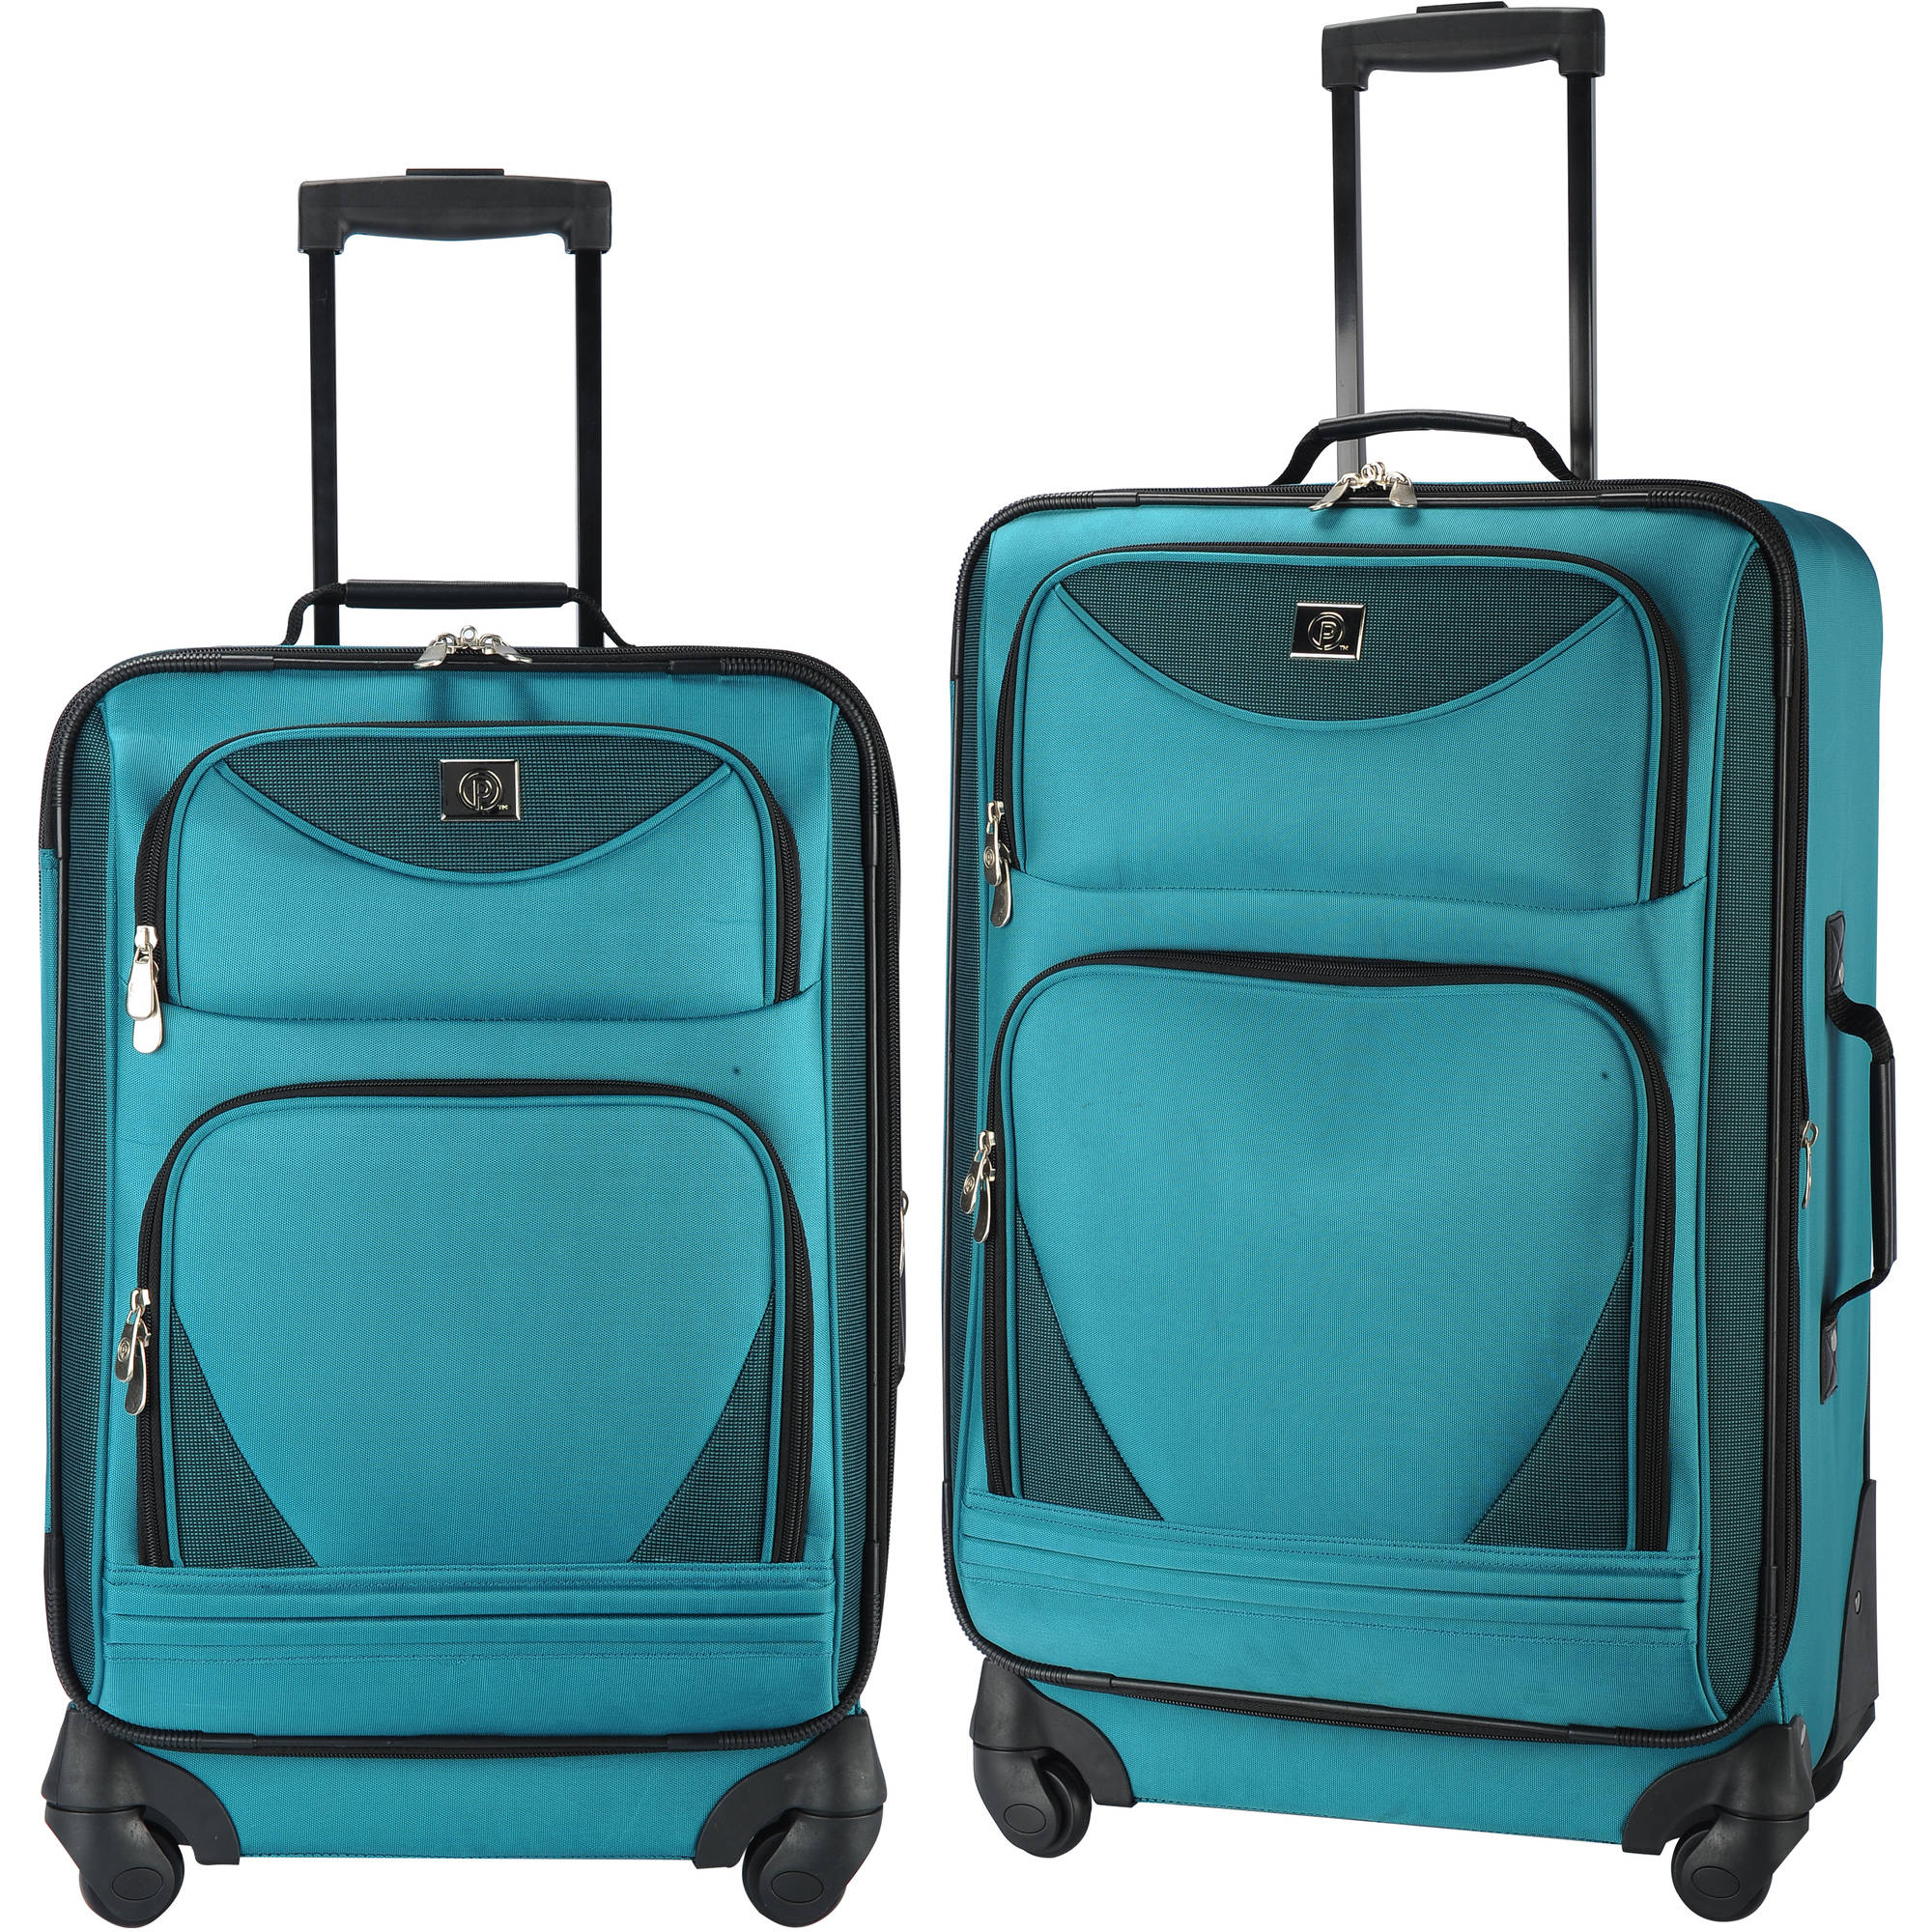 Protege 2-Piece Spinner Set Luggage